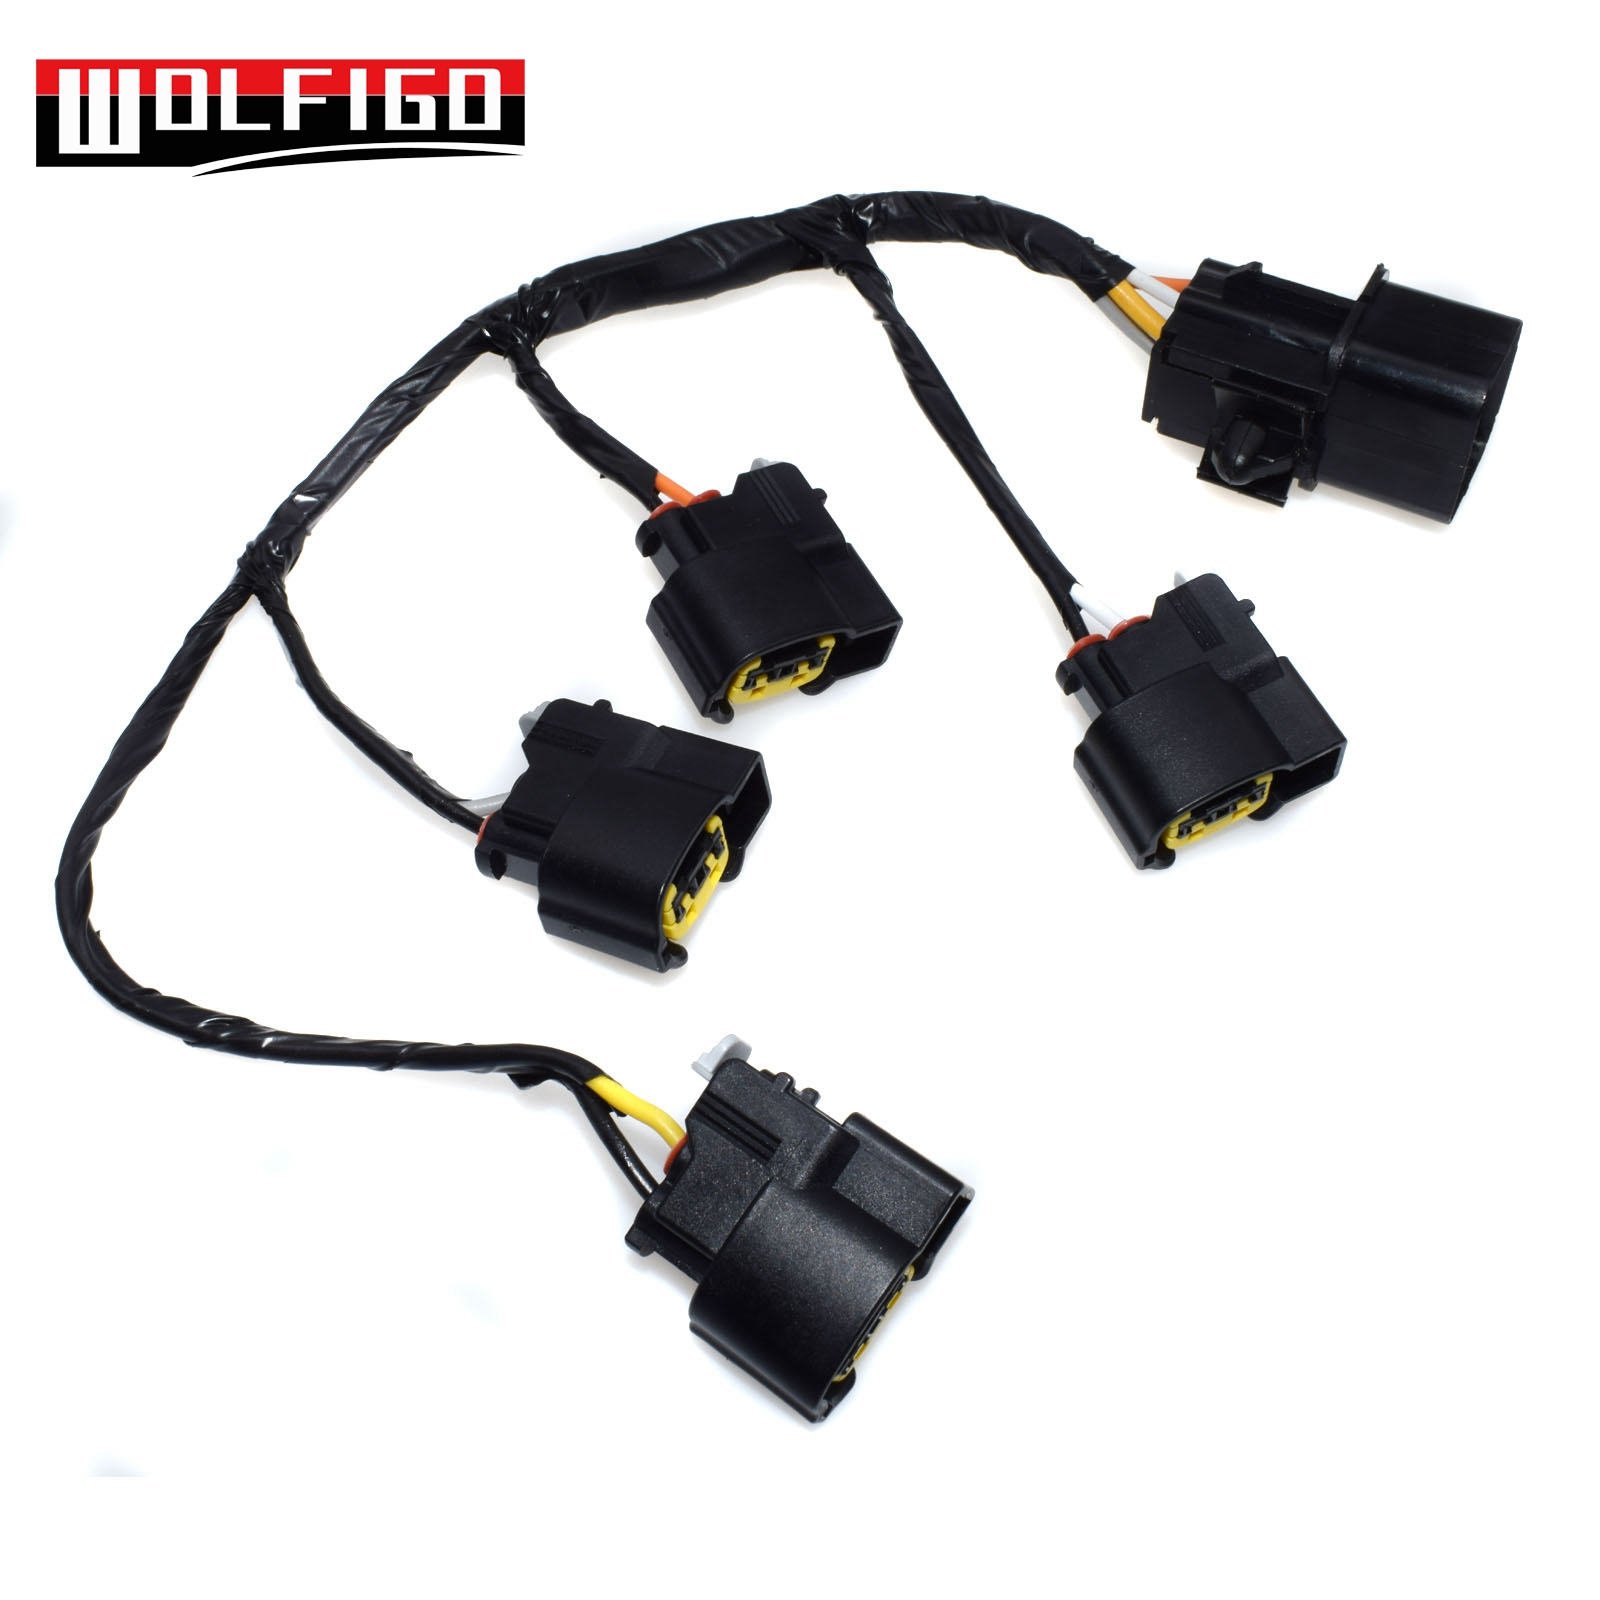 Wolfigo New Ignition Coil Wire Harness For Hyundai KIA Veloster Rio 16l 273502b000: Hyundai Veloster Wiring Harness At Executivepassage.co